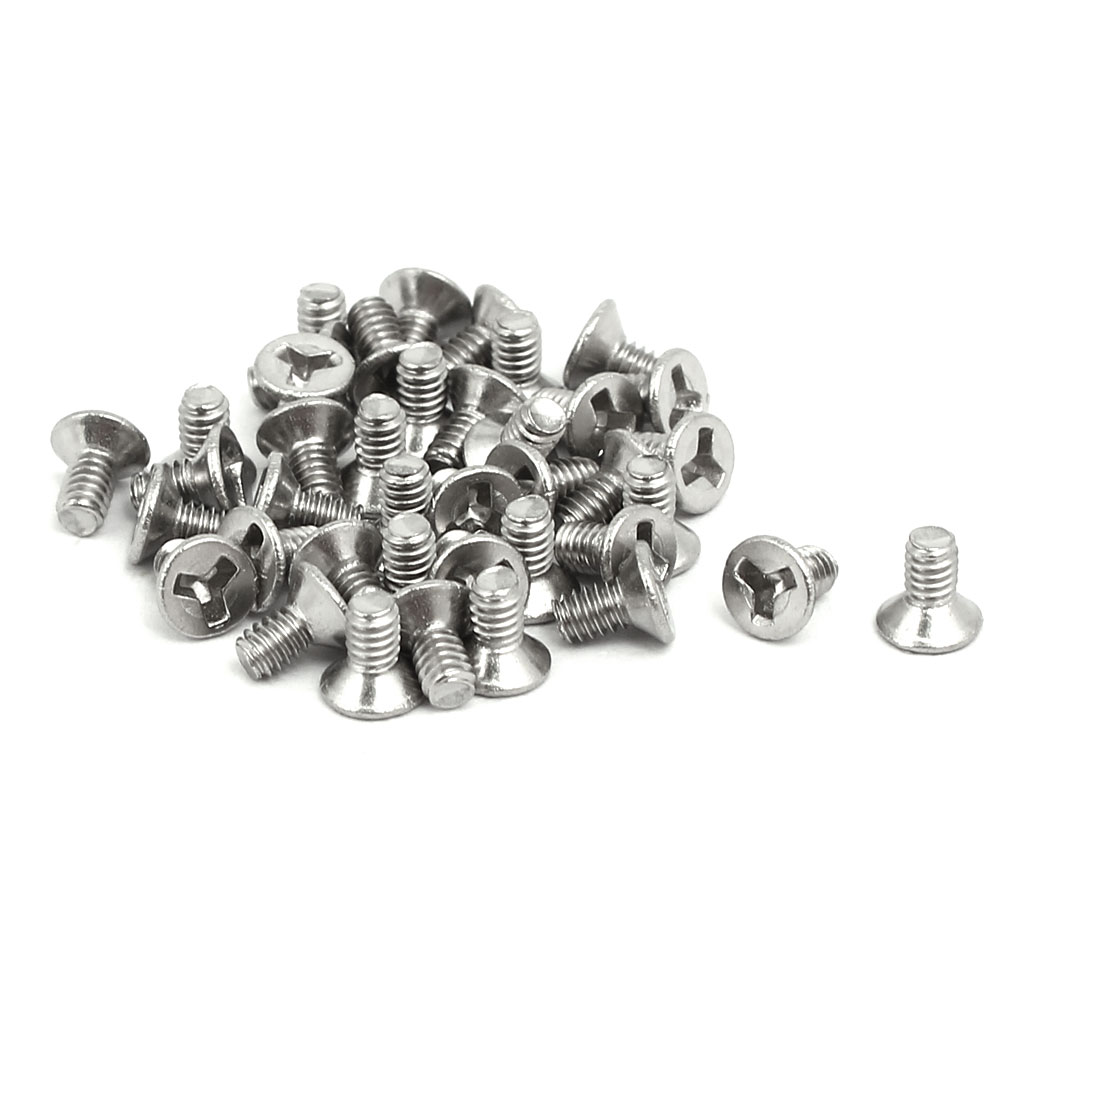 M2x4mm 304 Stainless Steel Y Type Socket Flat Head Tamper Proof Screws 40pcs - image 2 de 2